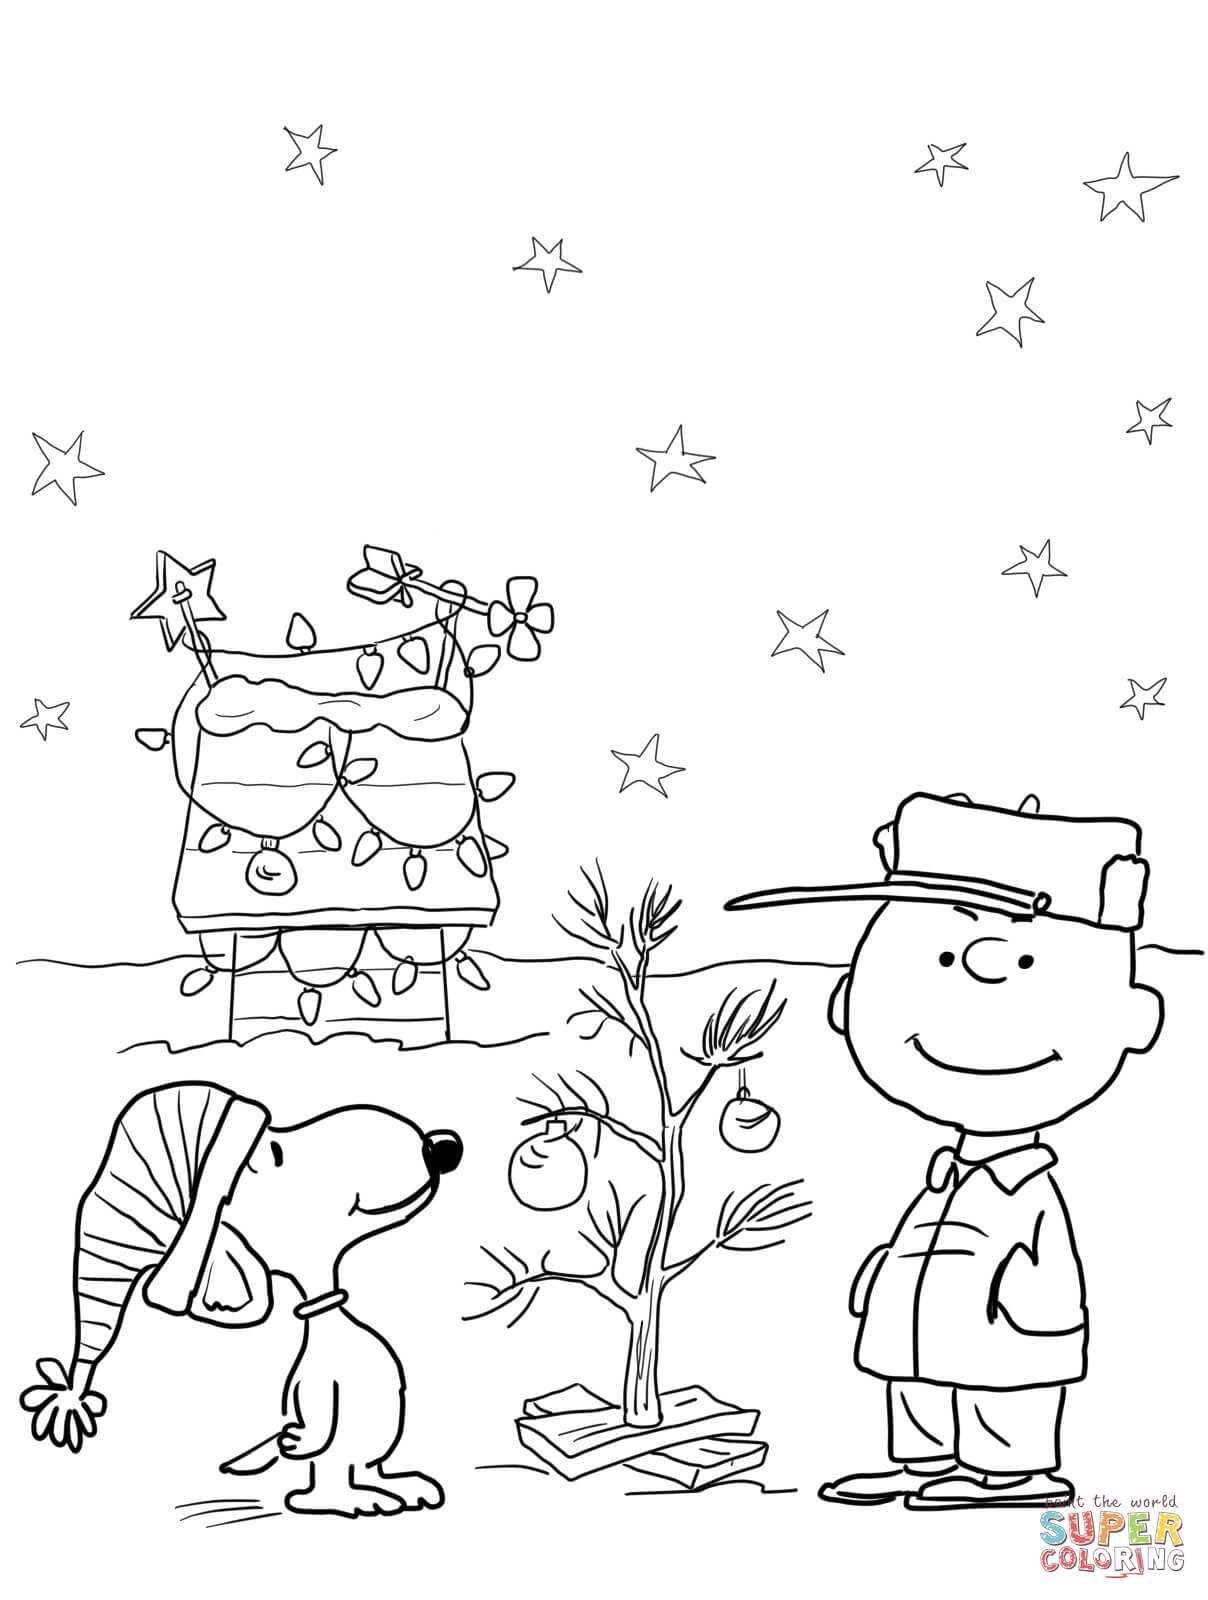 Christmas Coloring Images Free With Charlie Brown Page Printable Pages